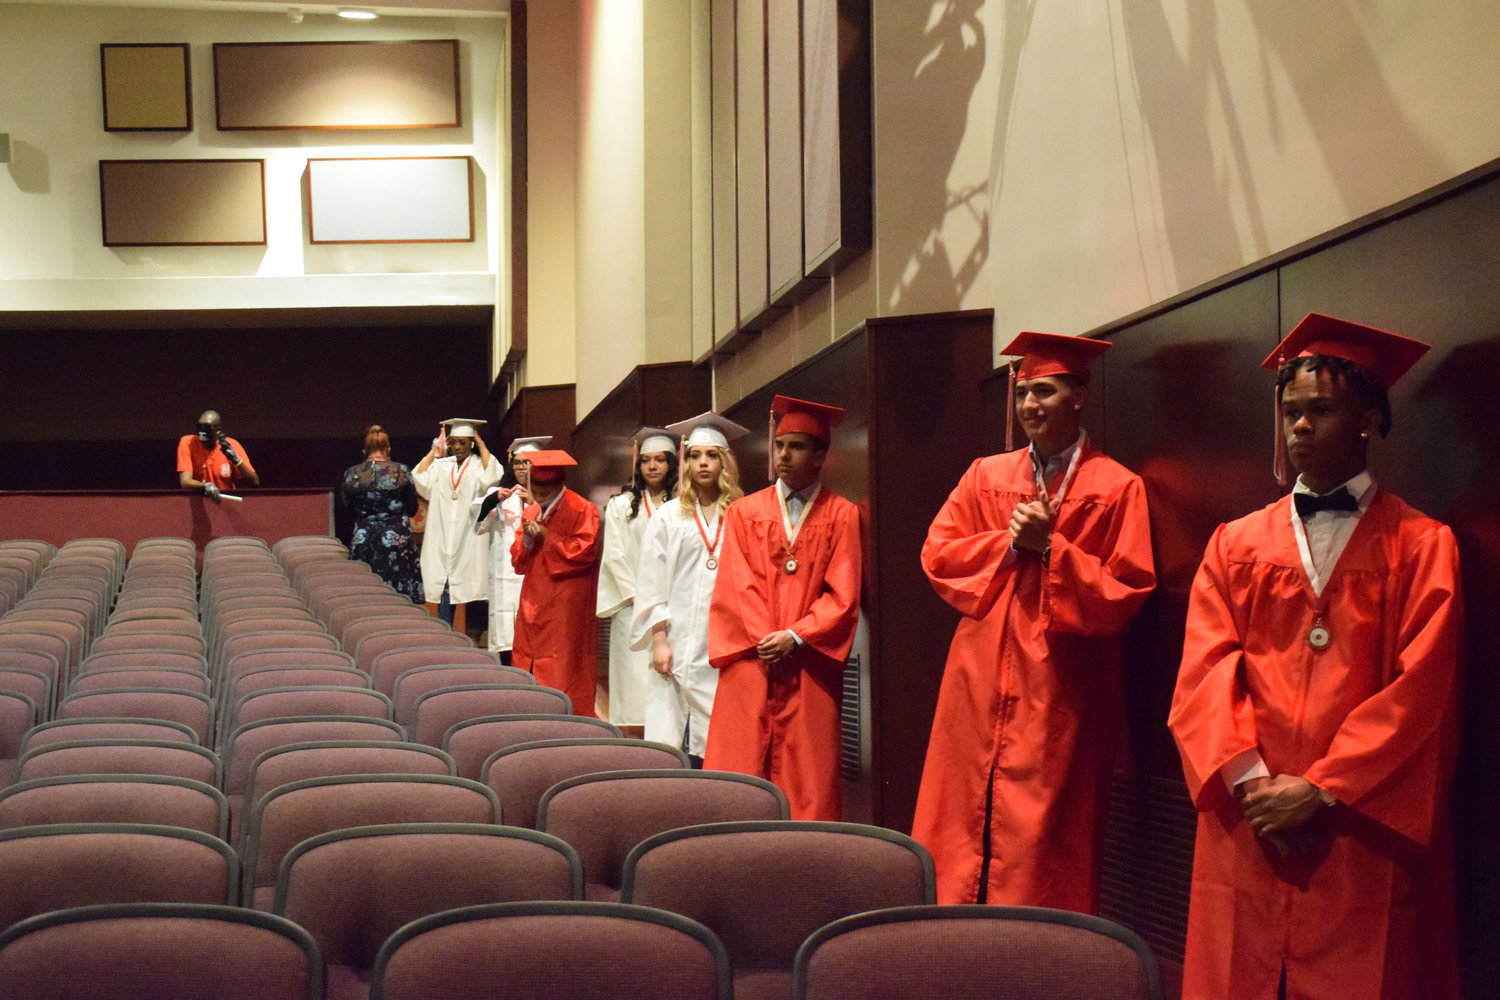 Seniors stood six-feet apart from each other as they took part in the small ceremony.